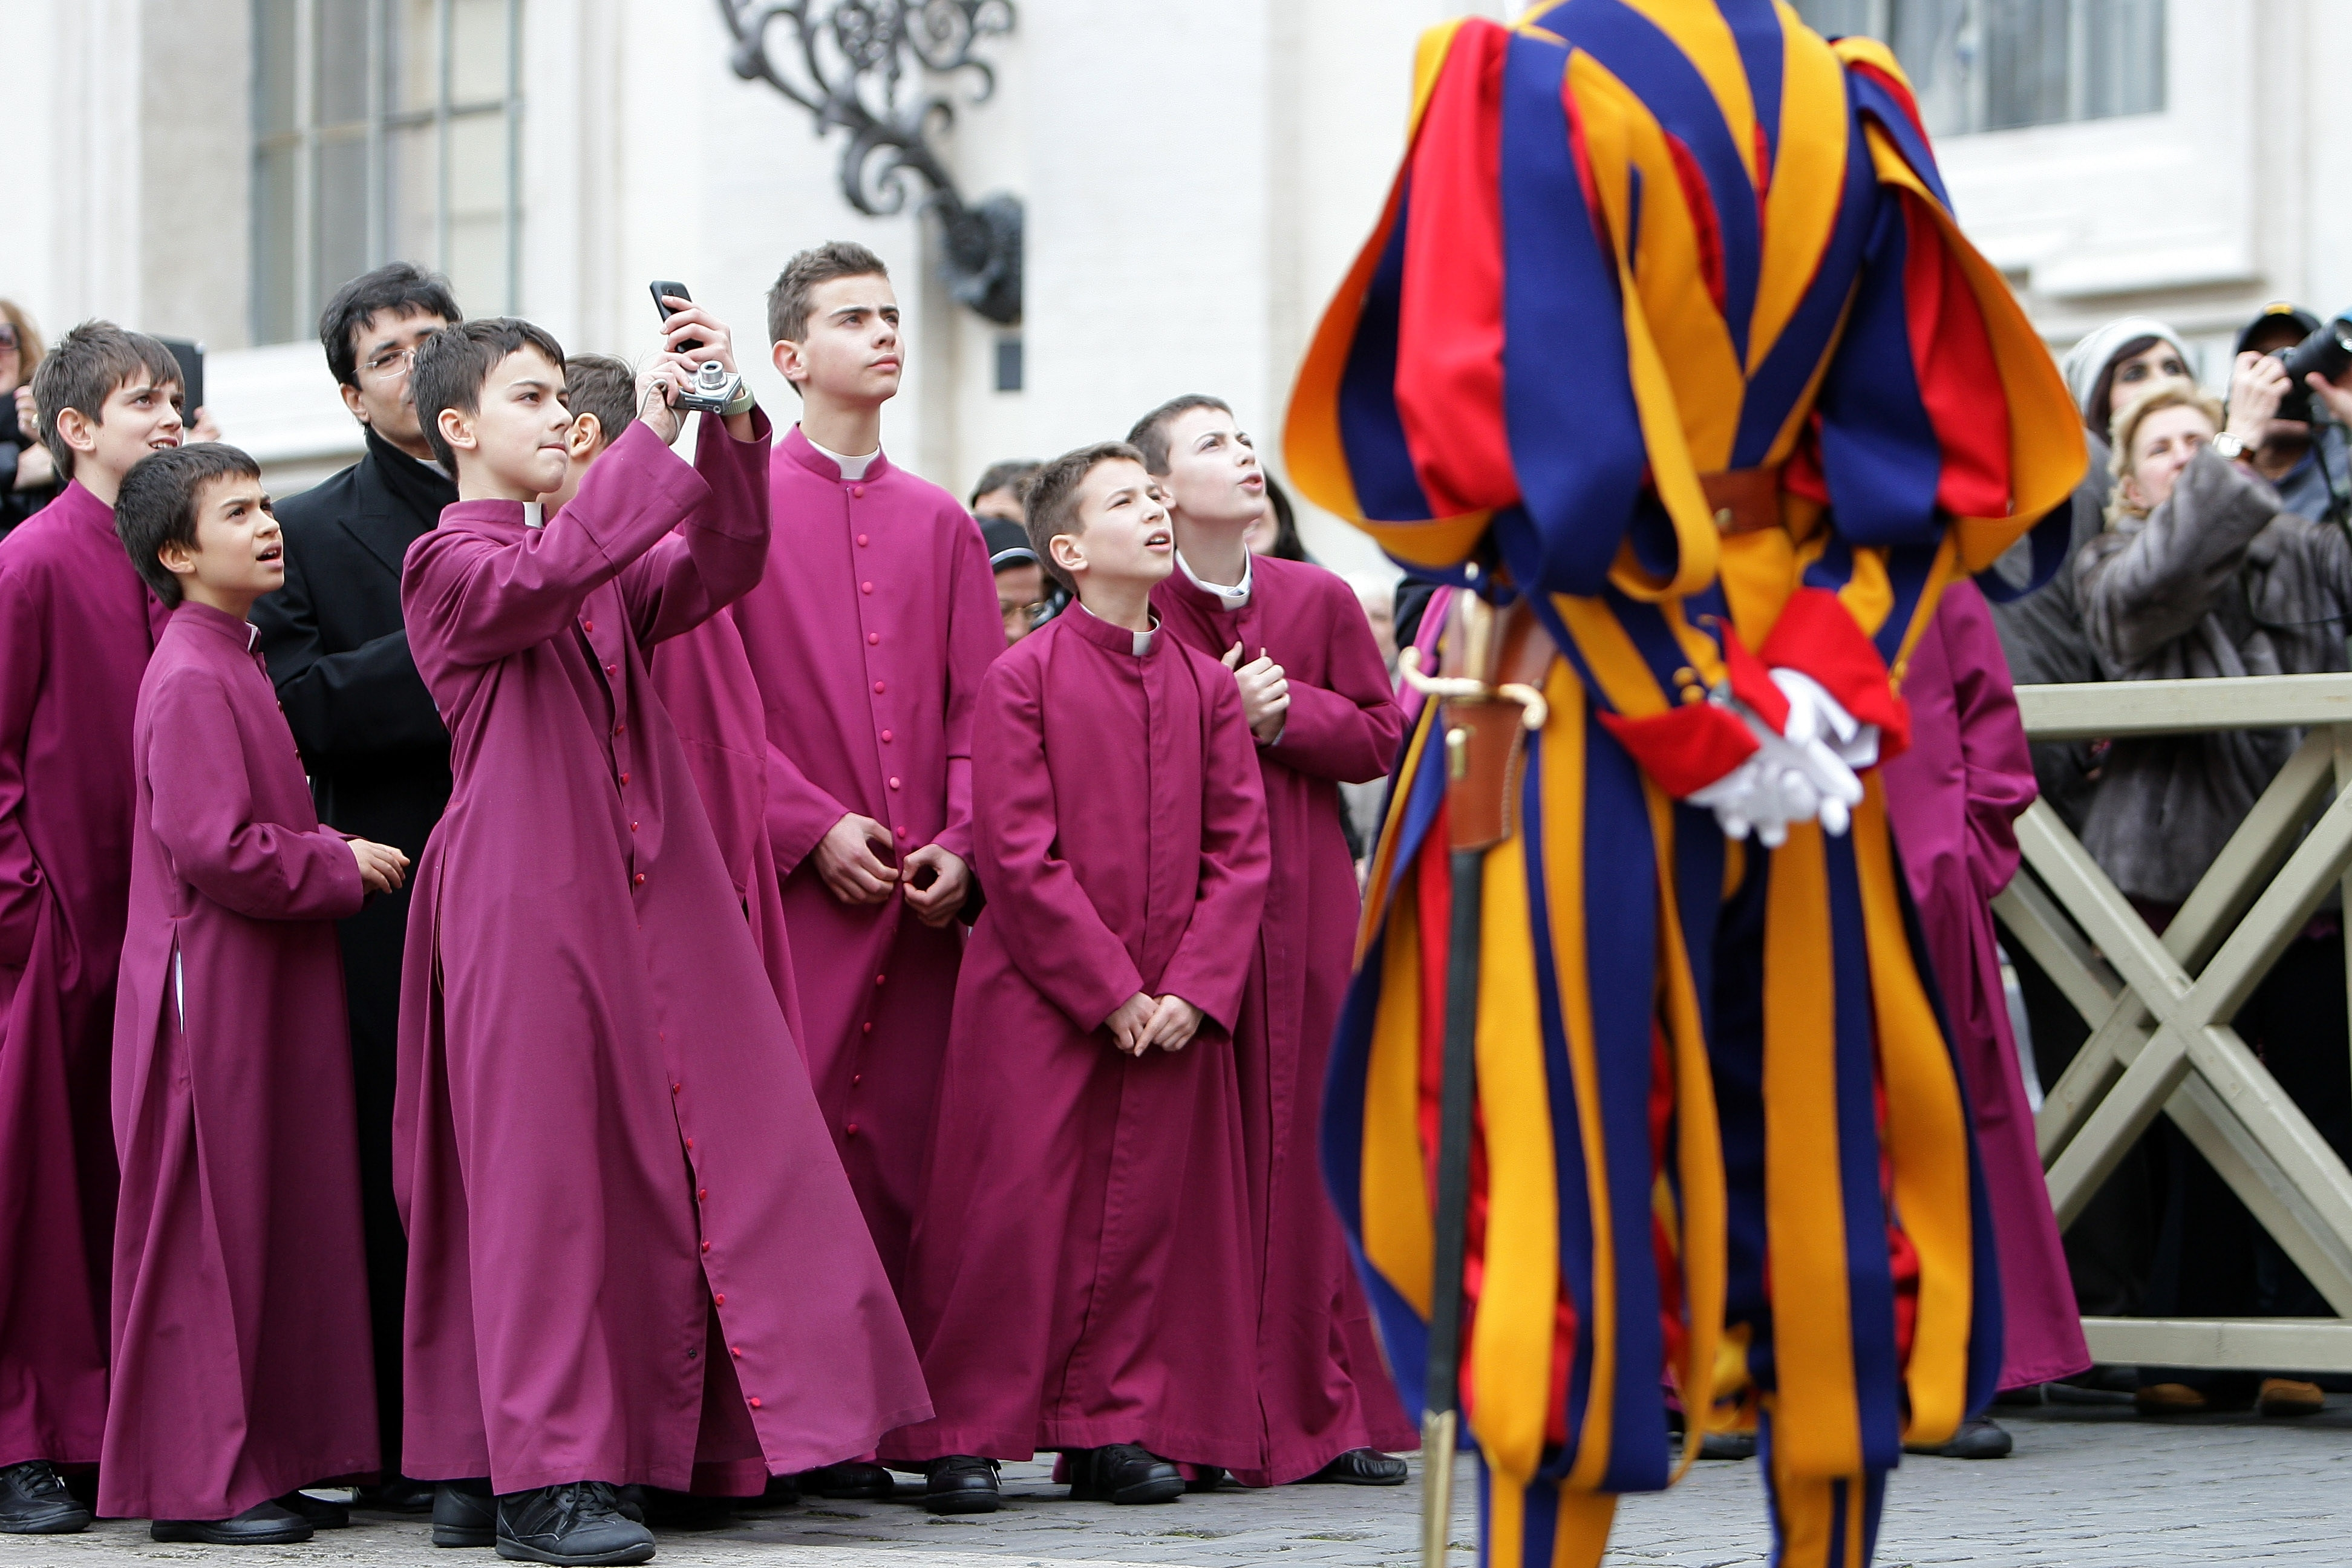 Altar boys gather in St. Peter's Square to attend Pope Francis' Christmas Day message, which focused on a broad call for global peace.